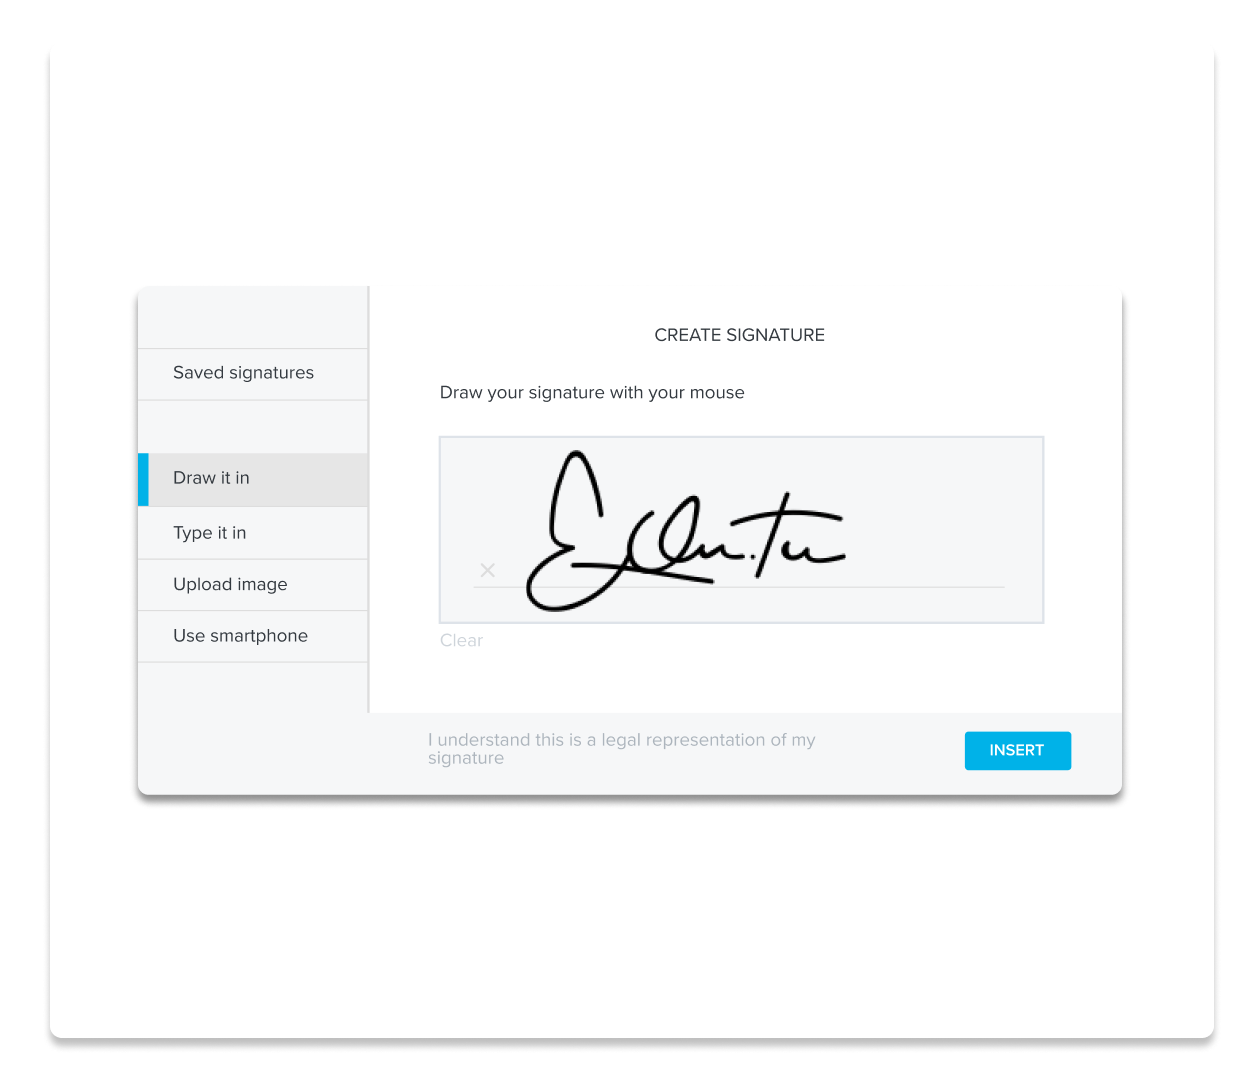 A screenshot of the HelloSign create signature experience